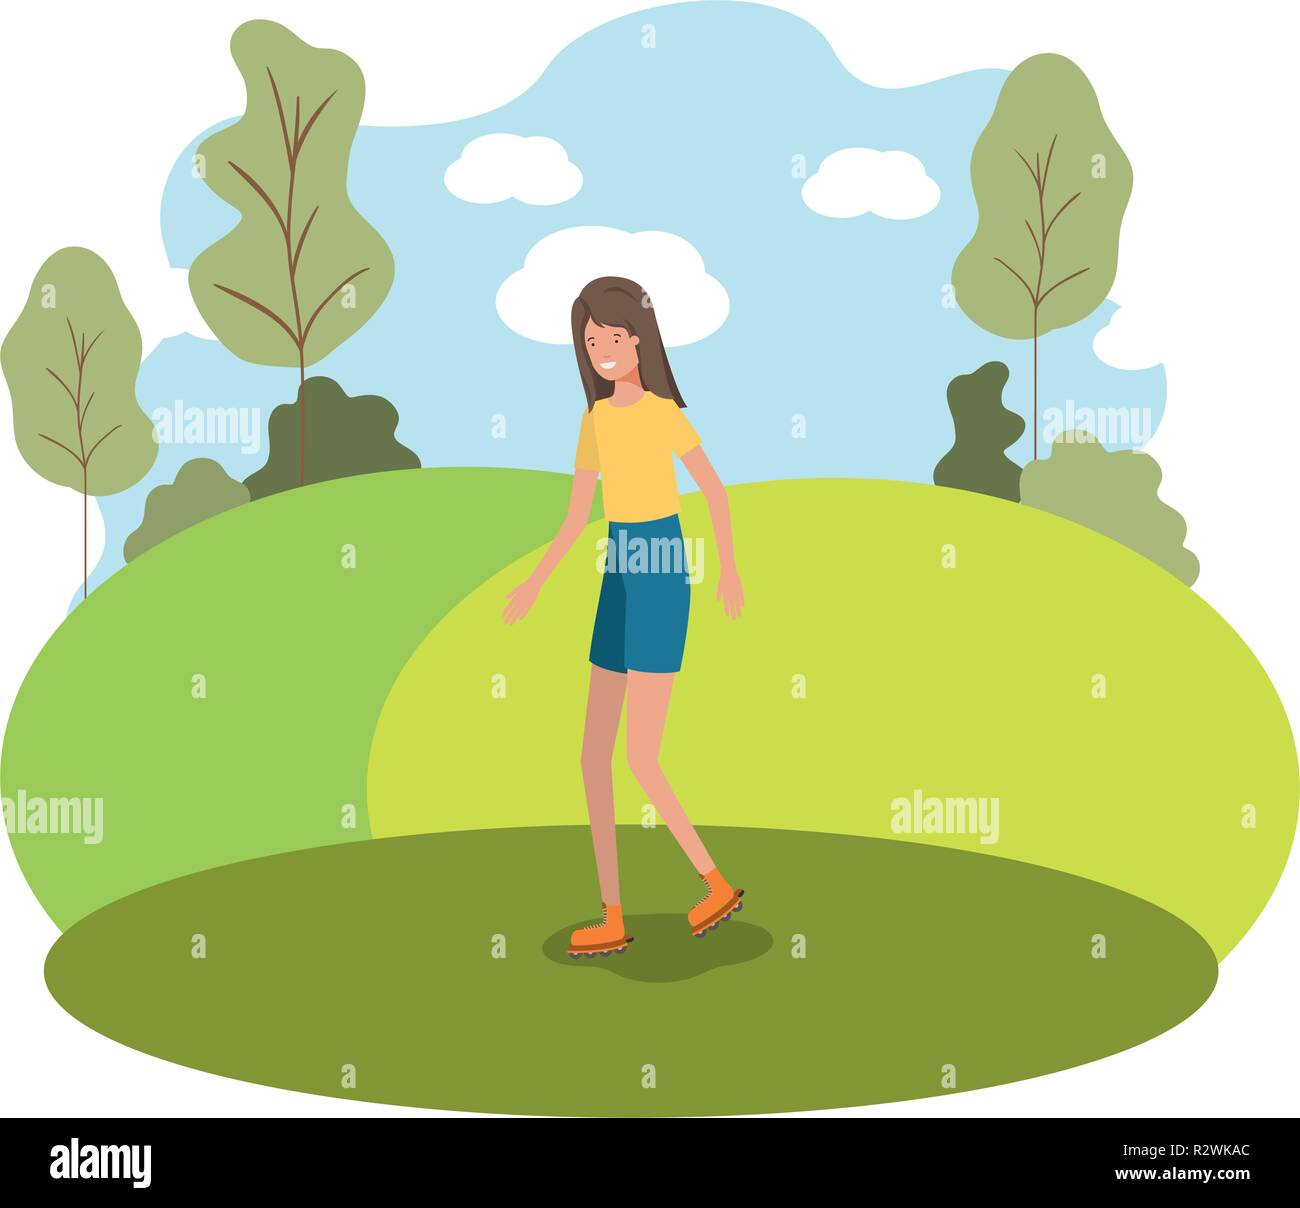 young woman practicing skating in the park - Stock Vector